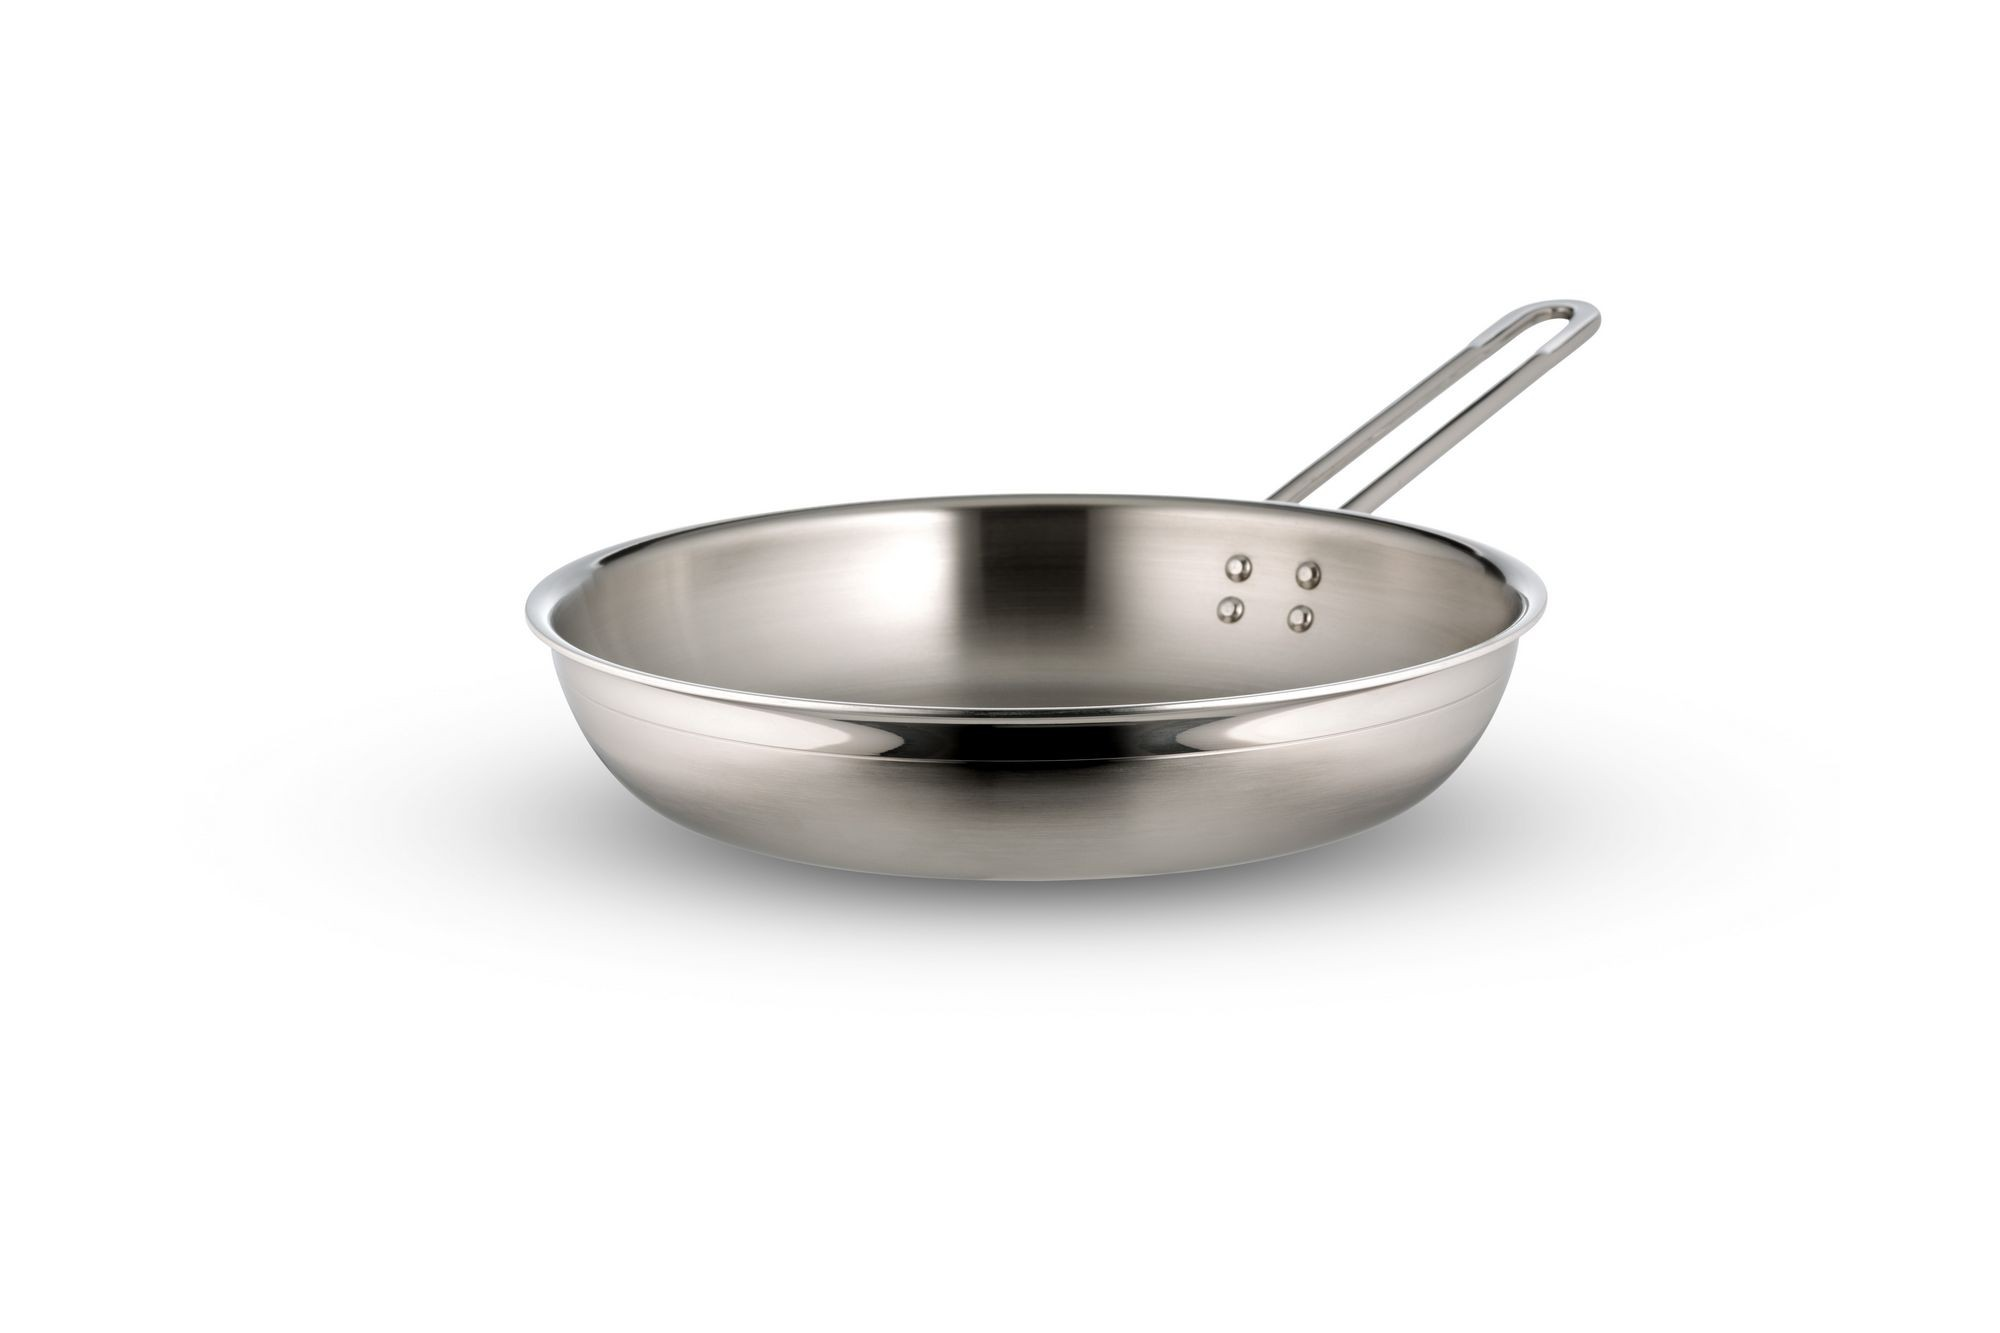 Bon Chef 60308-2ToneSS Country French Two Tone Stainless Steel Saute Pan with Long Handle, 2 Qt. 12 oz.